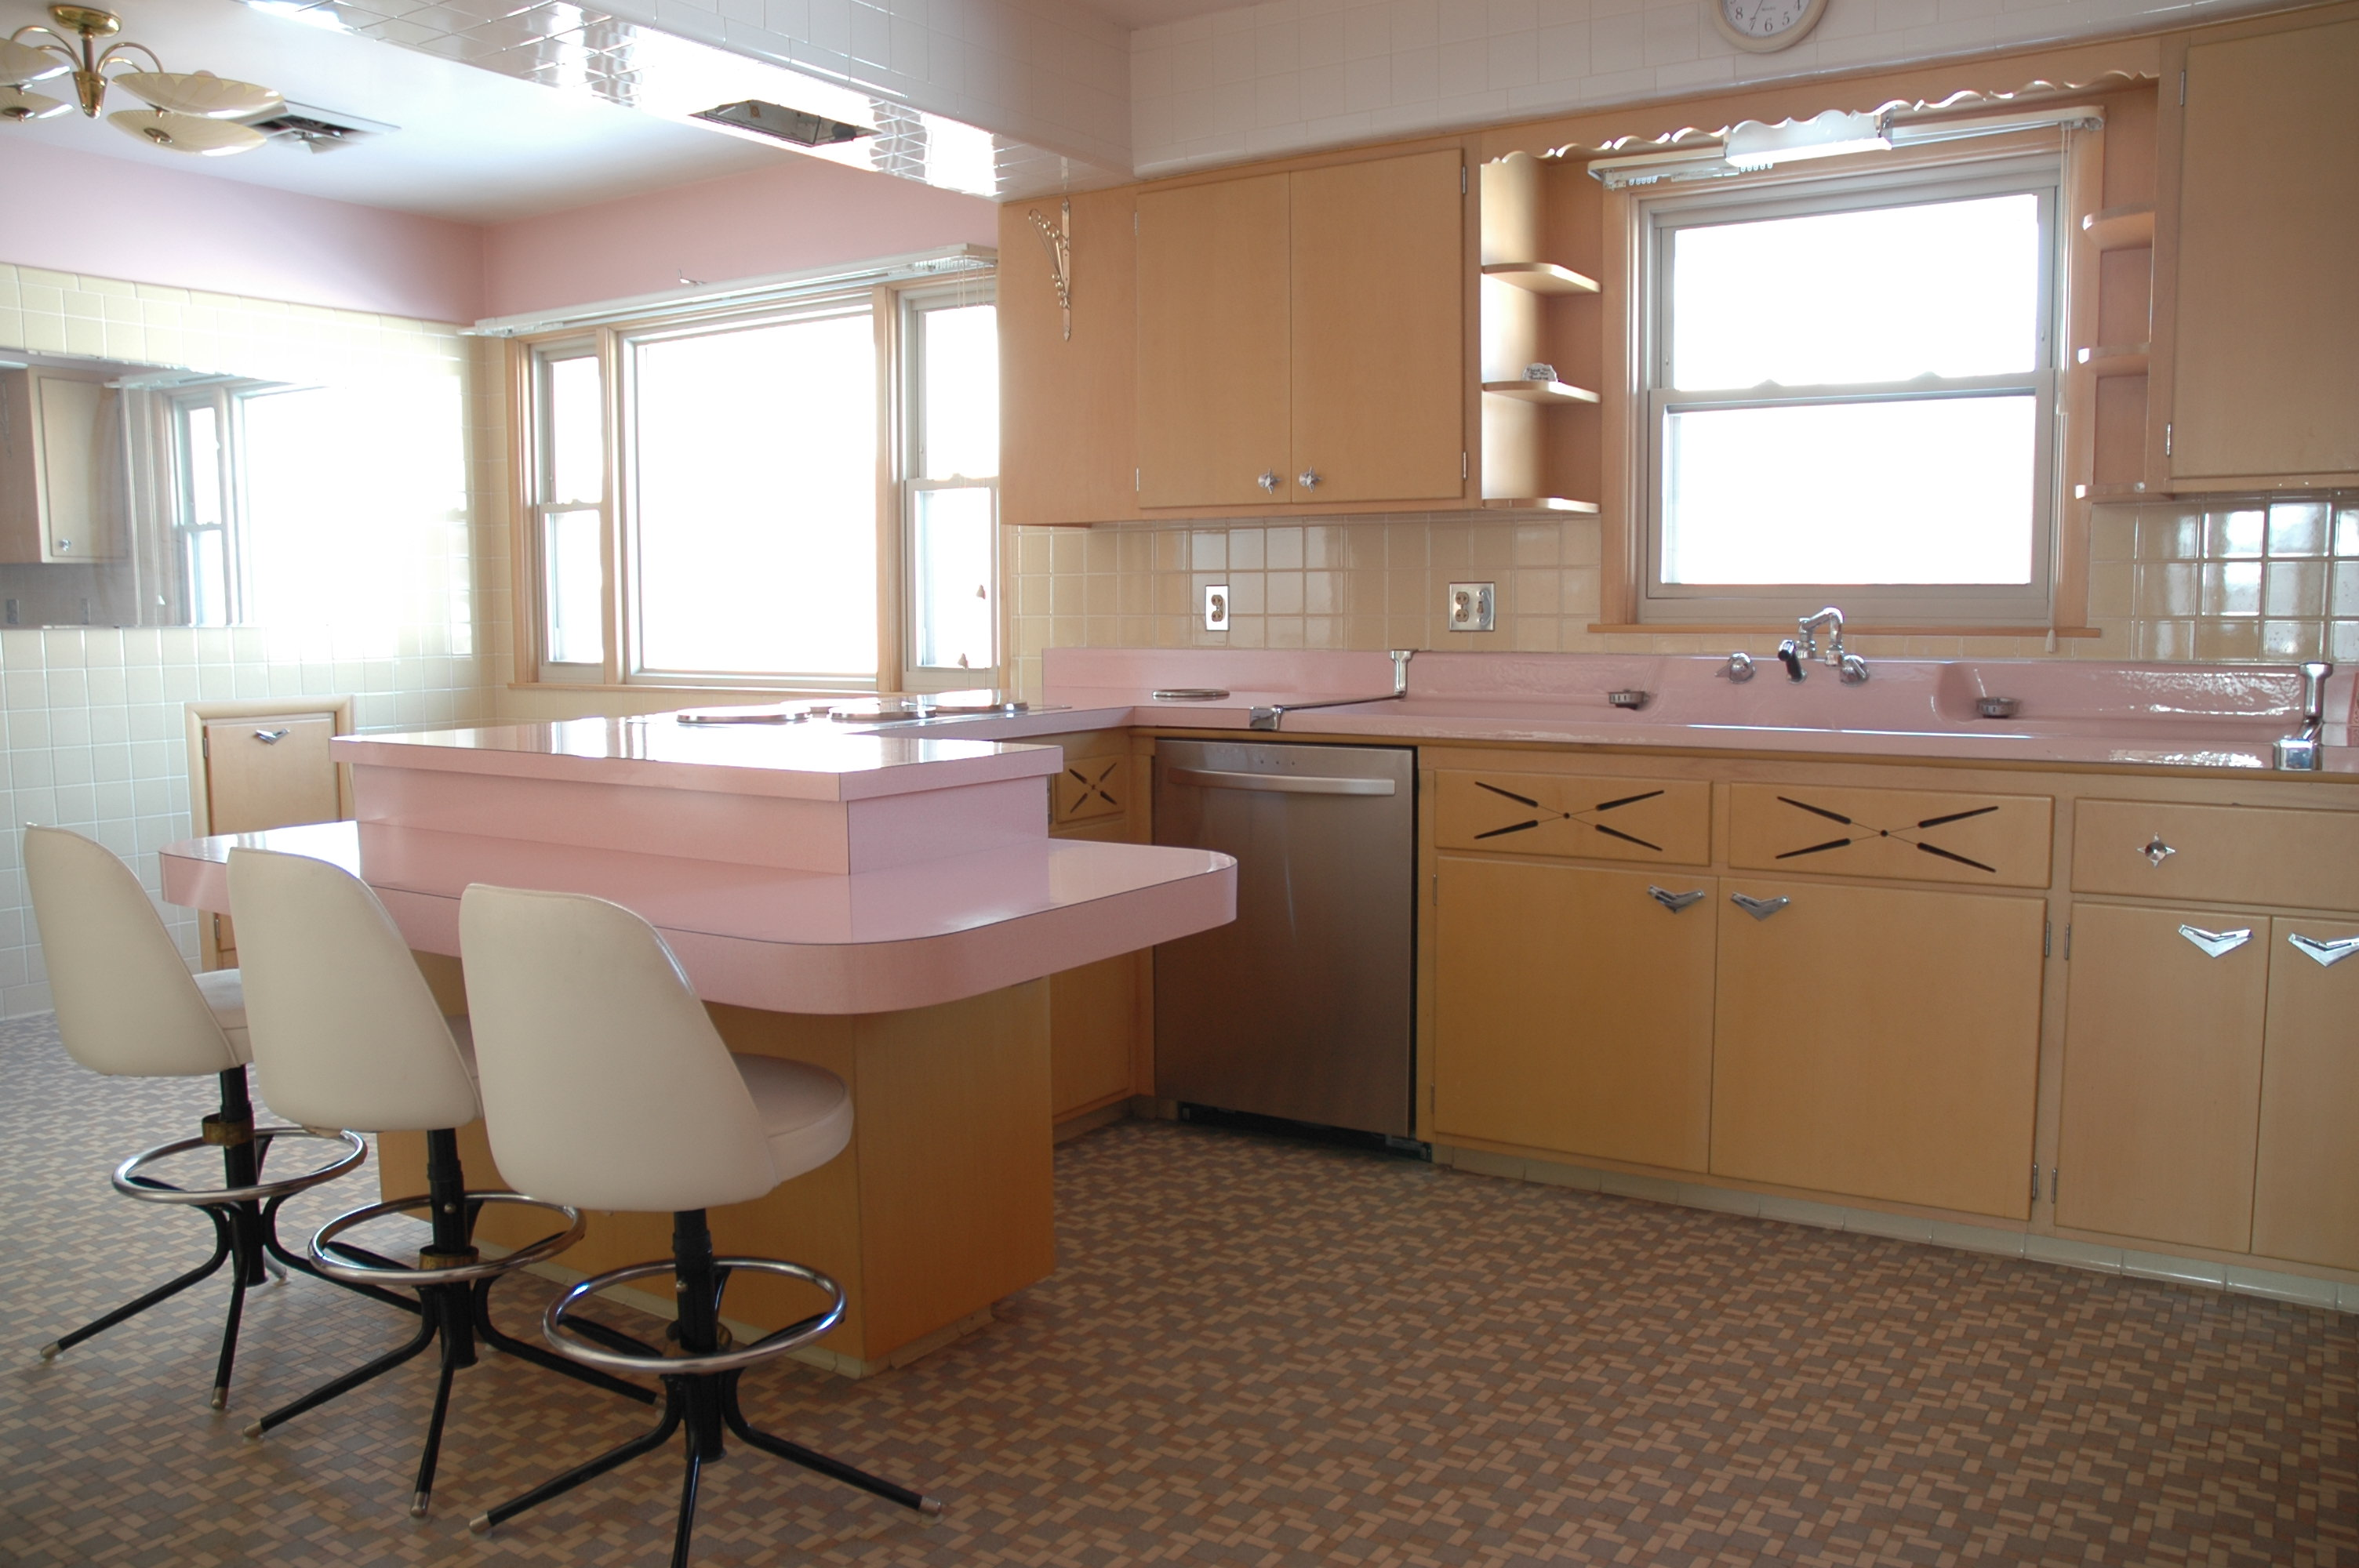 Renovated Kitchen 20 Charming Midcentury Kitchens Ranked From Virtually Untouched